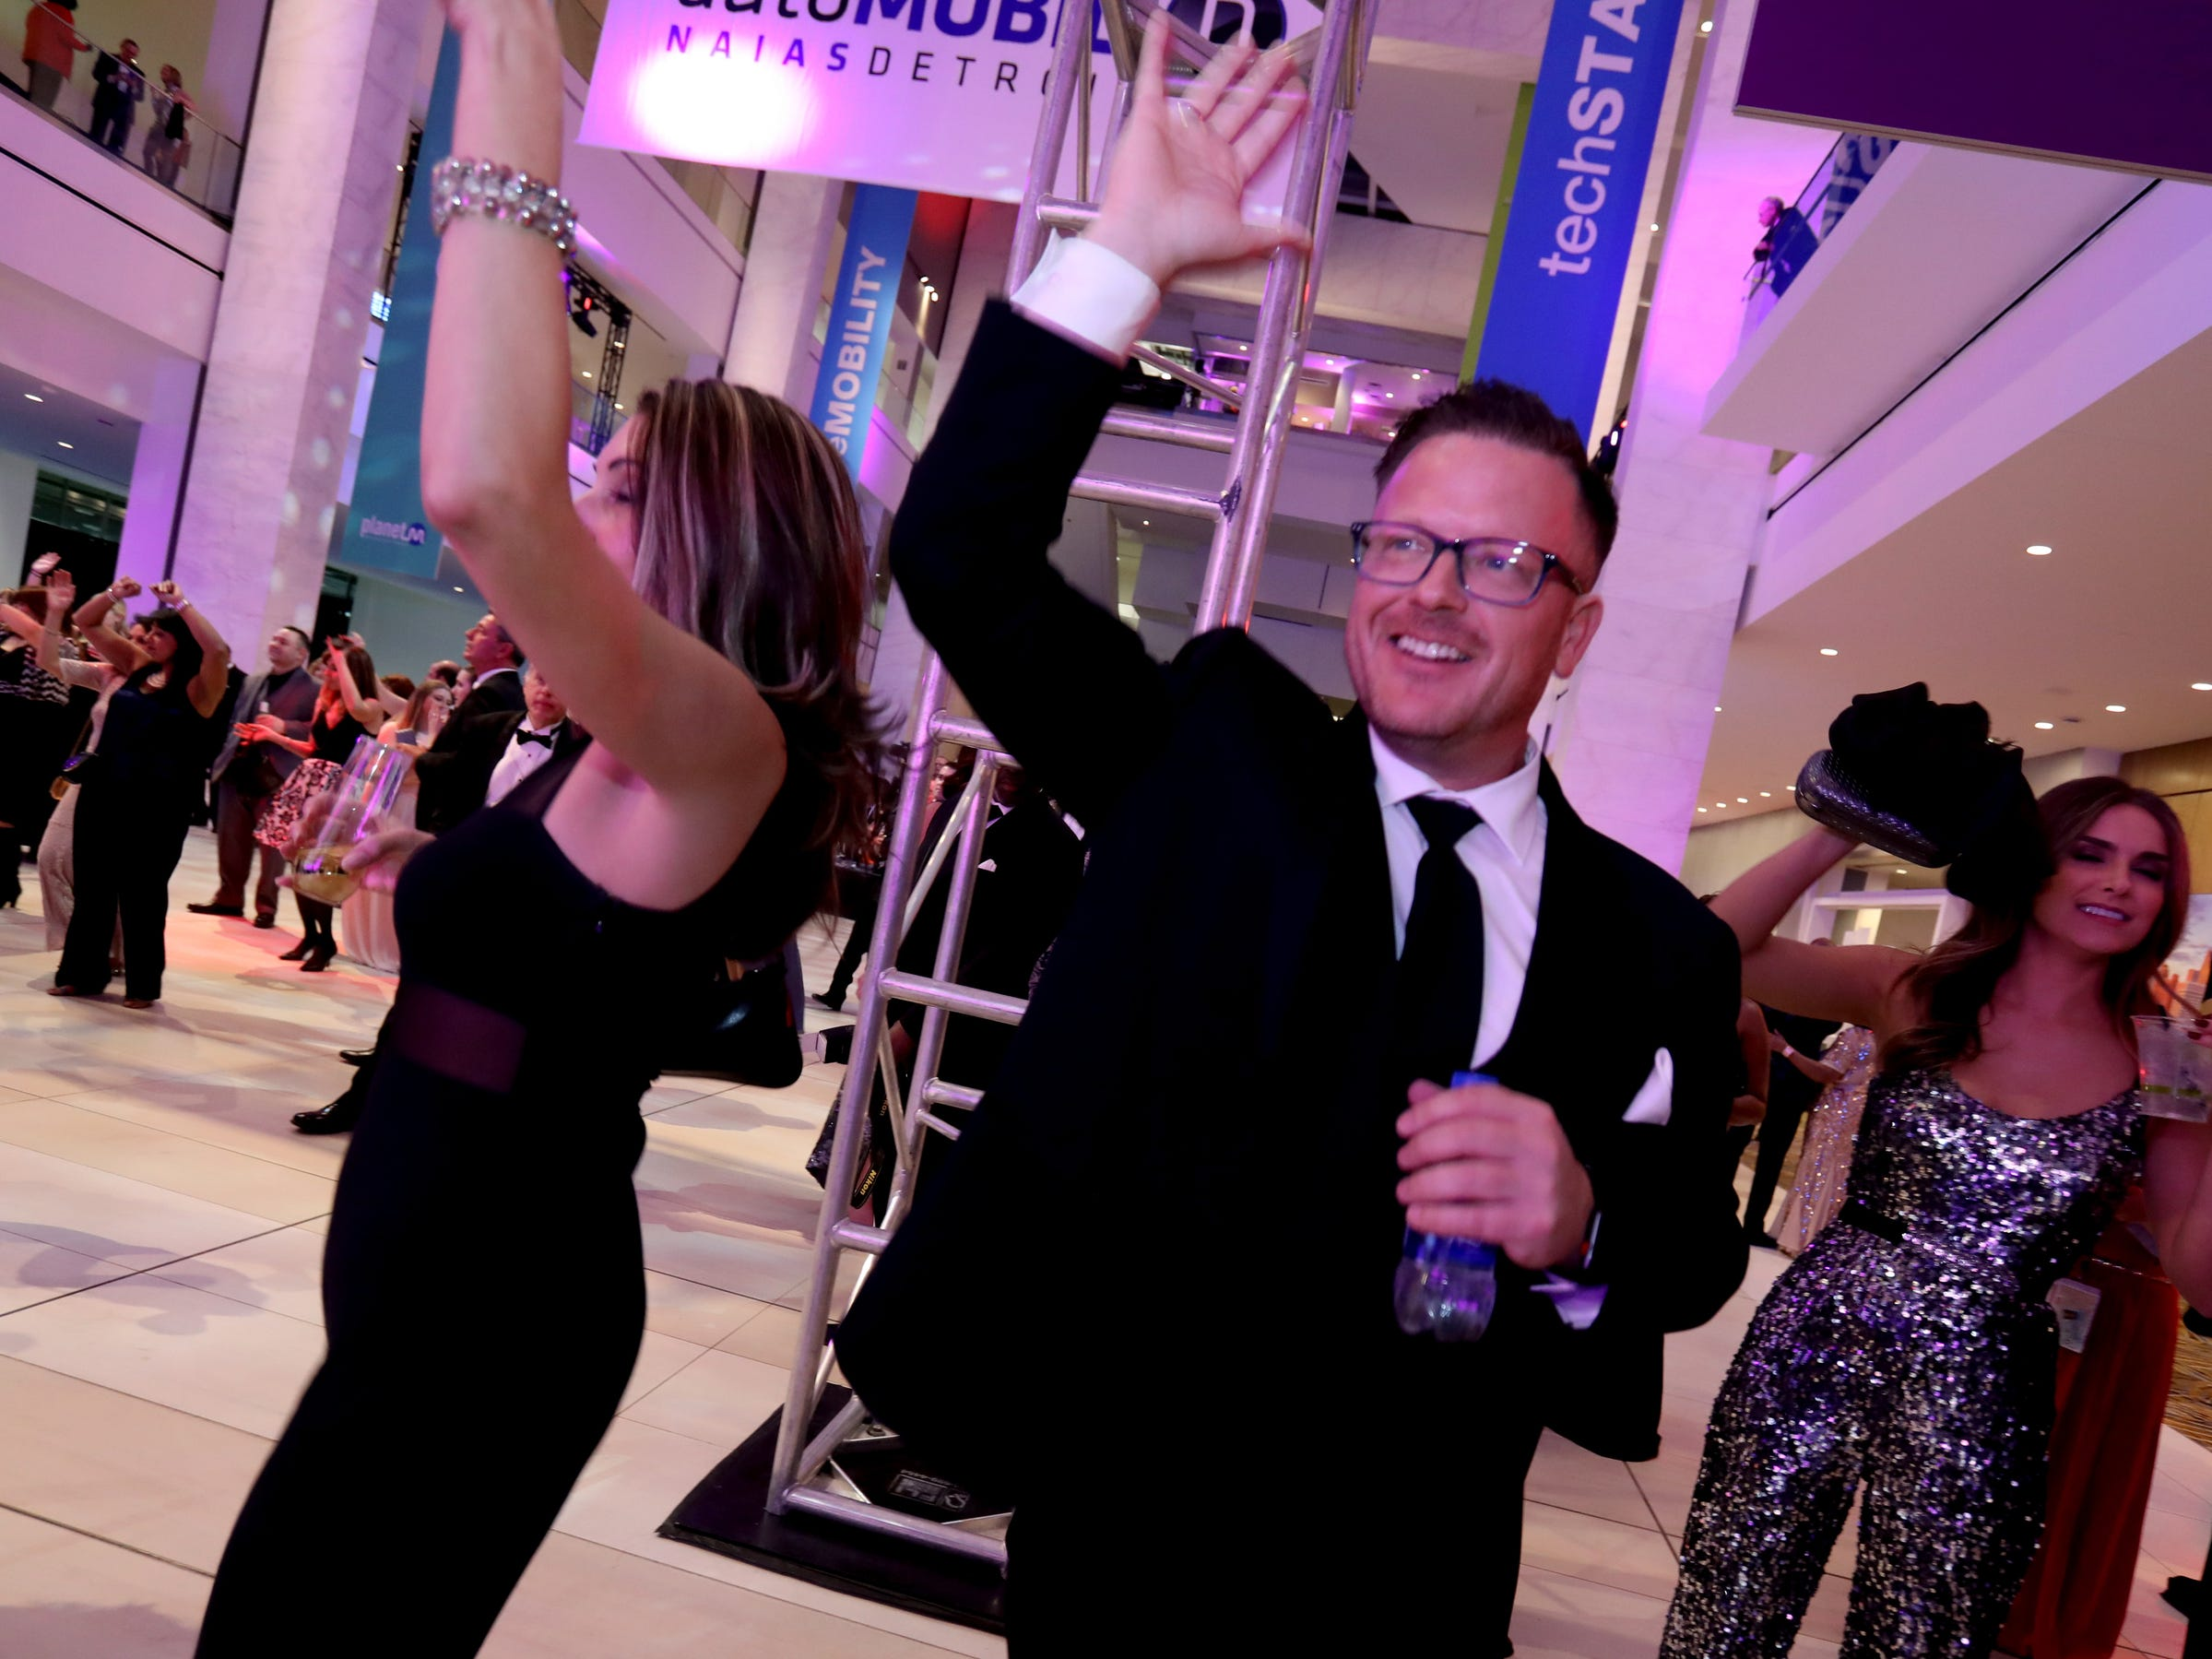 (L to R) Rebecca Kuta and Teddy Deming of Flushing, Michigan dance to Your Generation as they perform for the 2019 North American International Auto Show Charity Preview crowd at Cobo Center in Detroit on Friday, January 18, 2019.